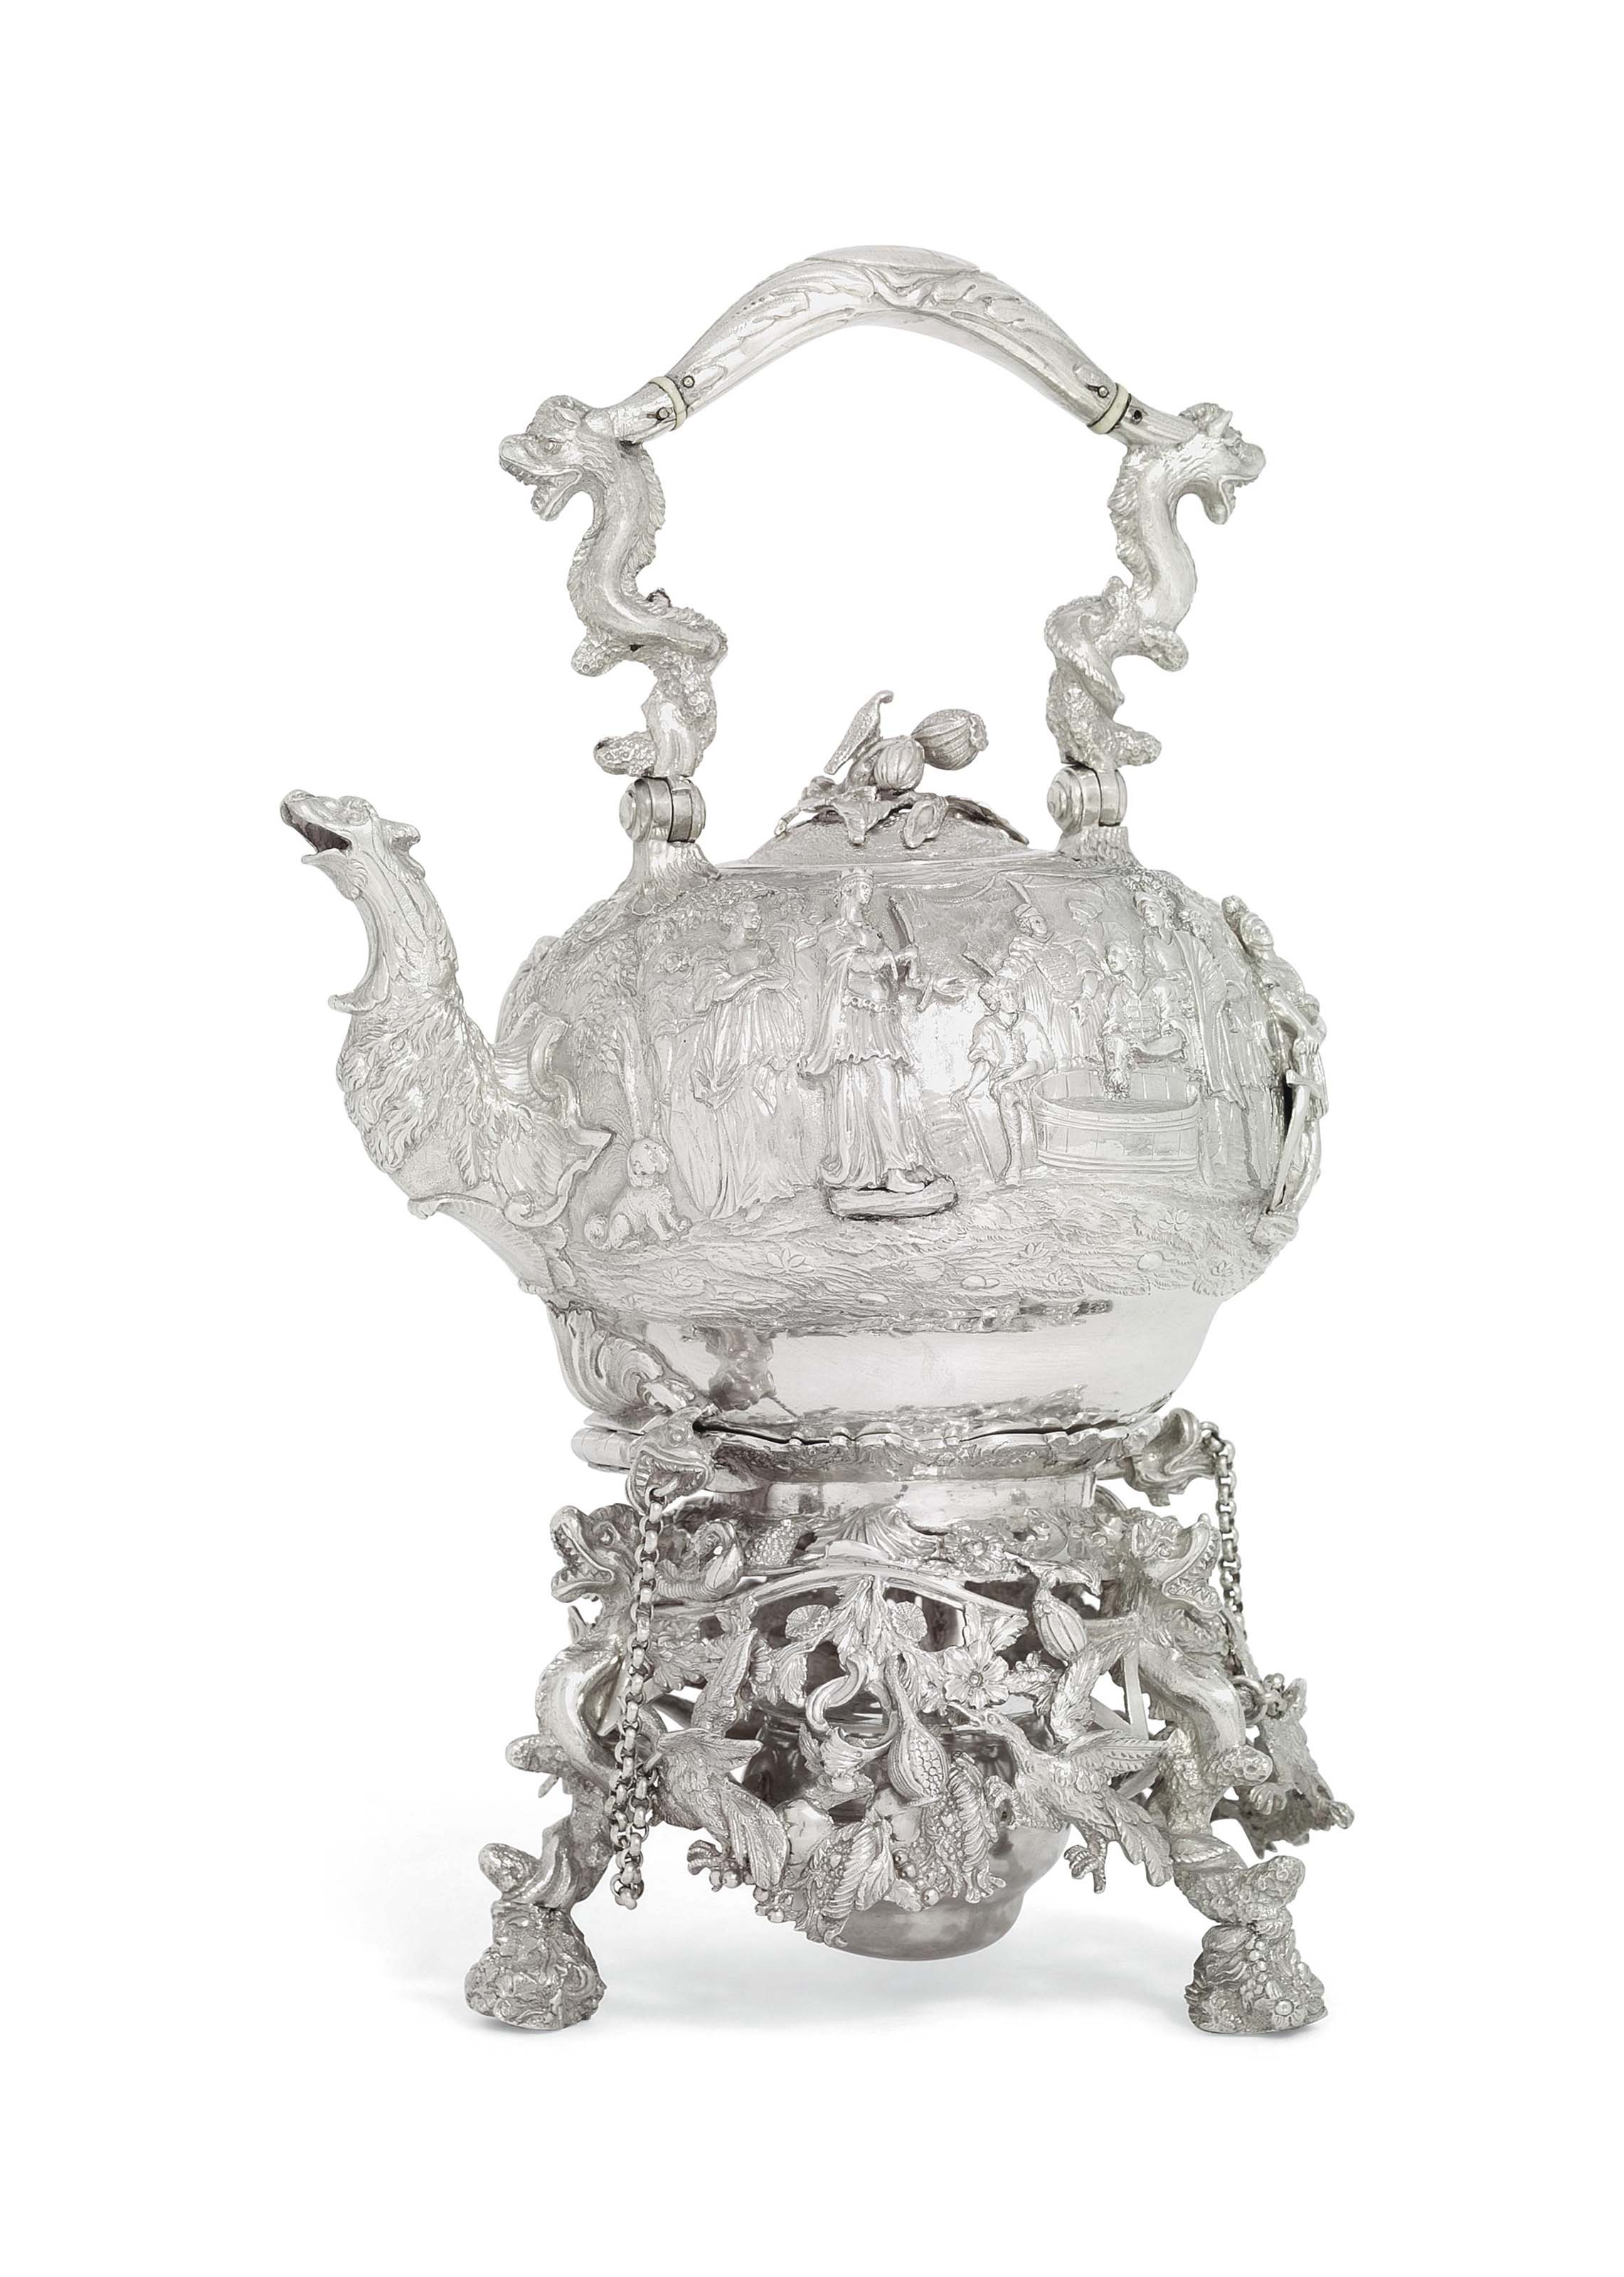 A GEORGE III SILVER KETTLE AND STAND